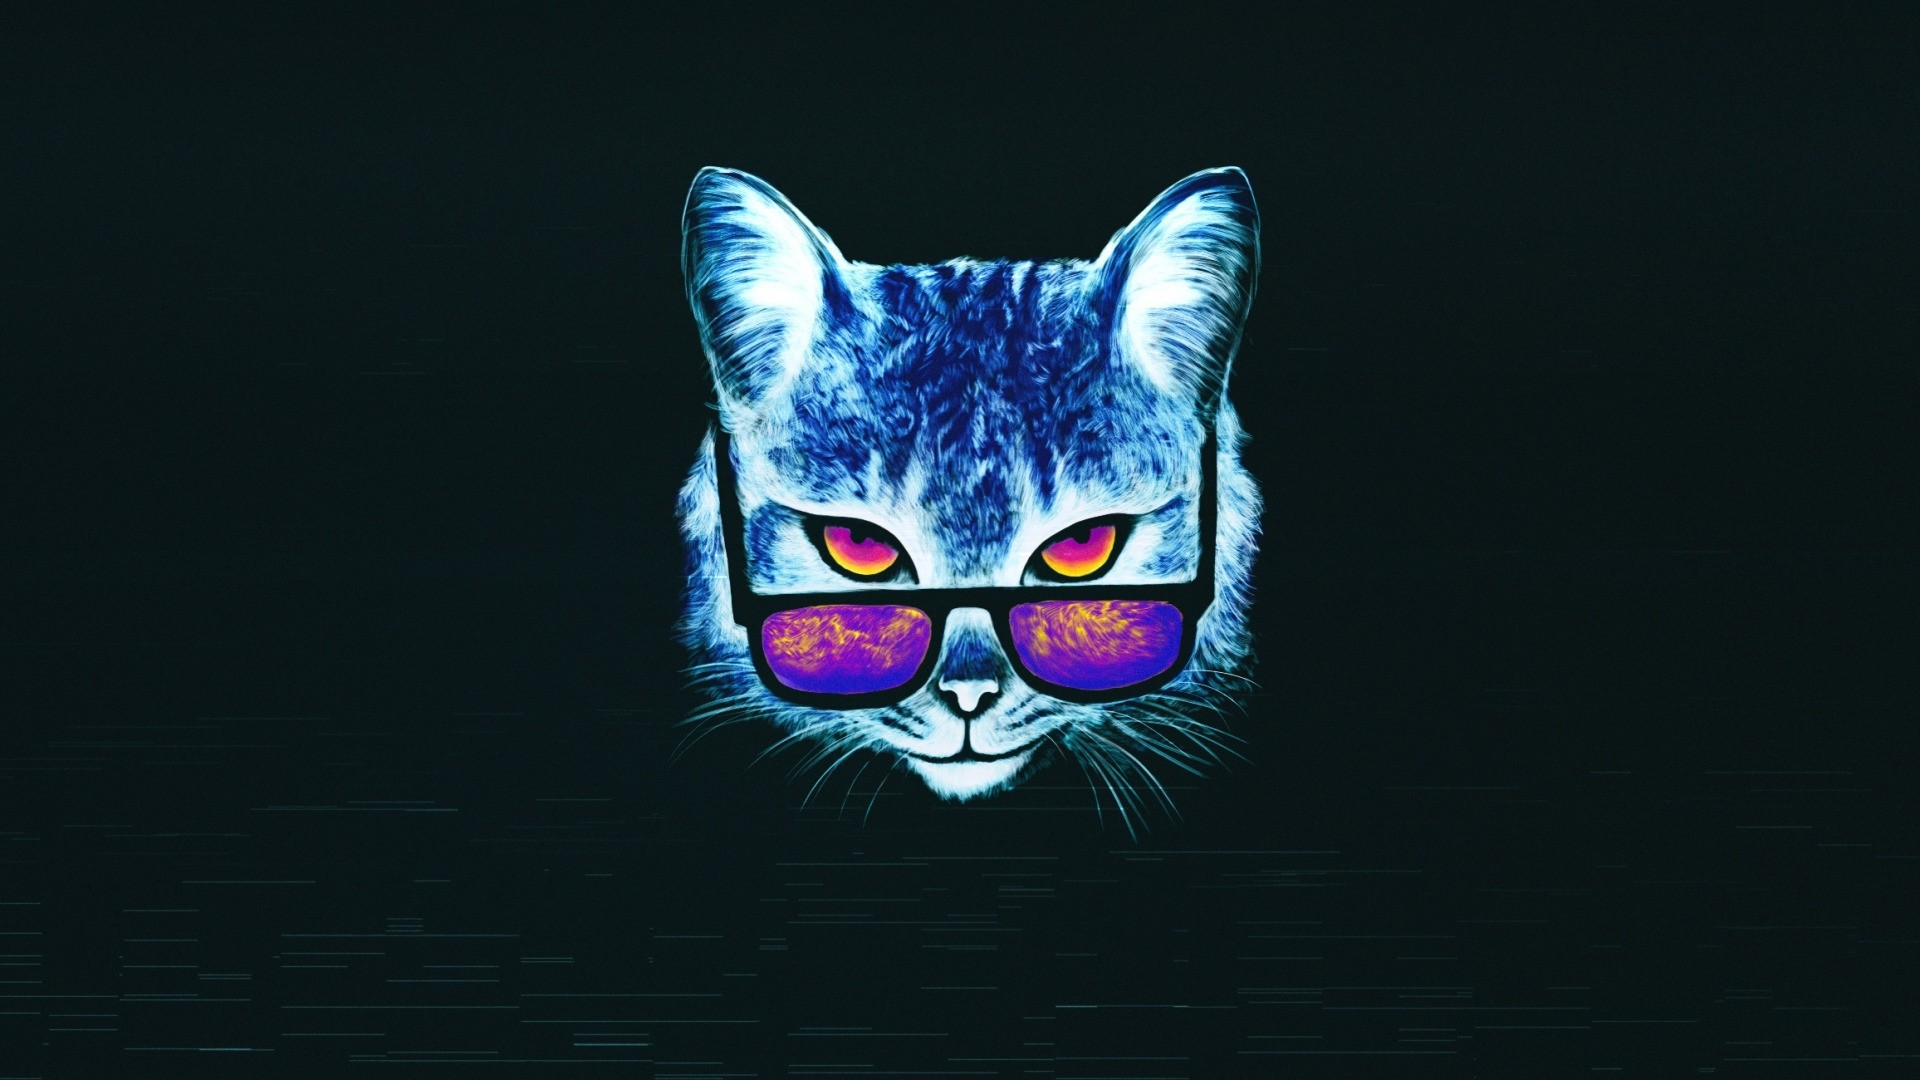 Cat With Glasses Wallpaper